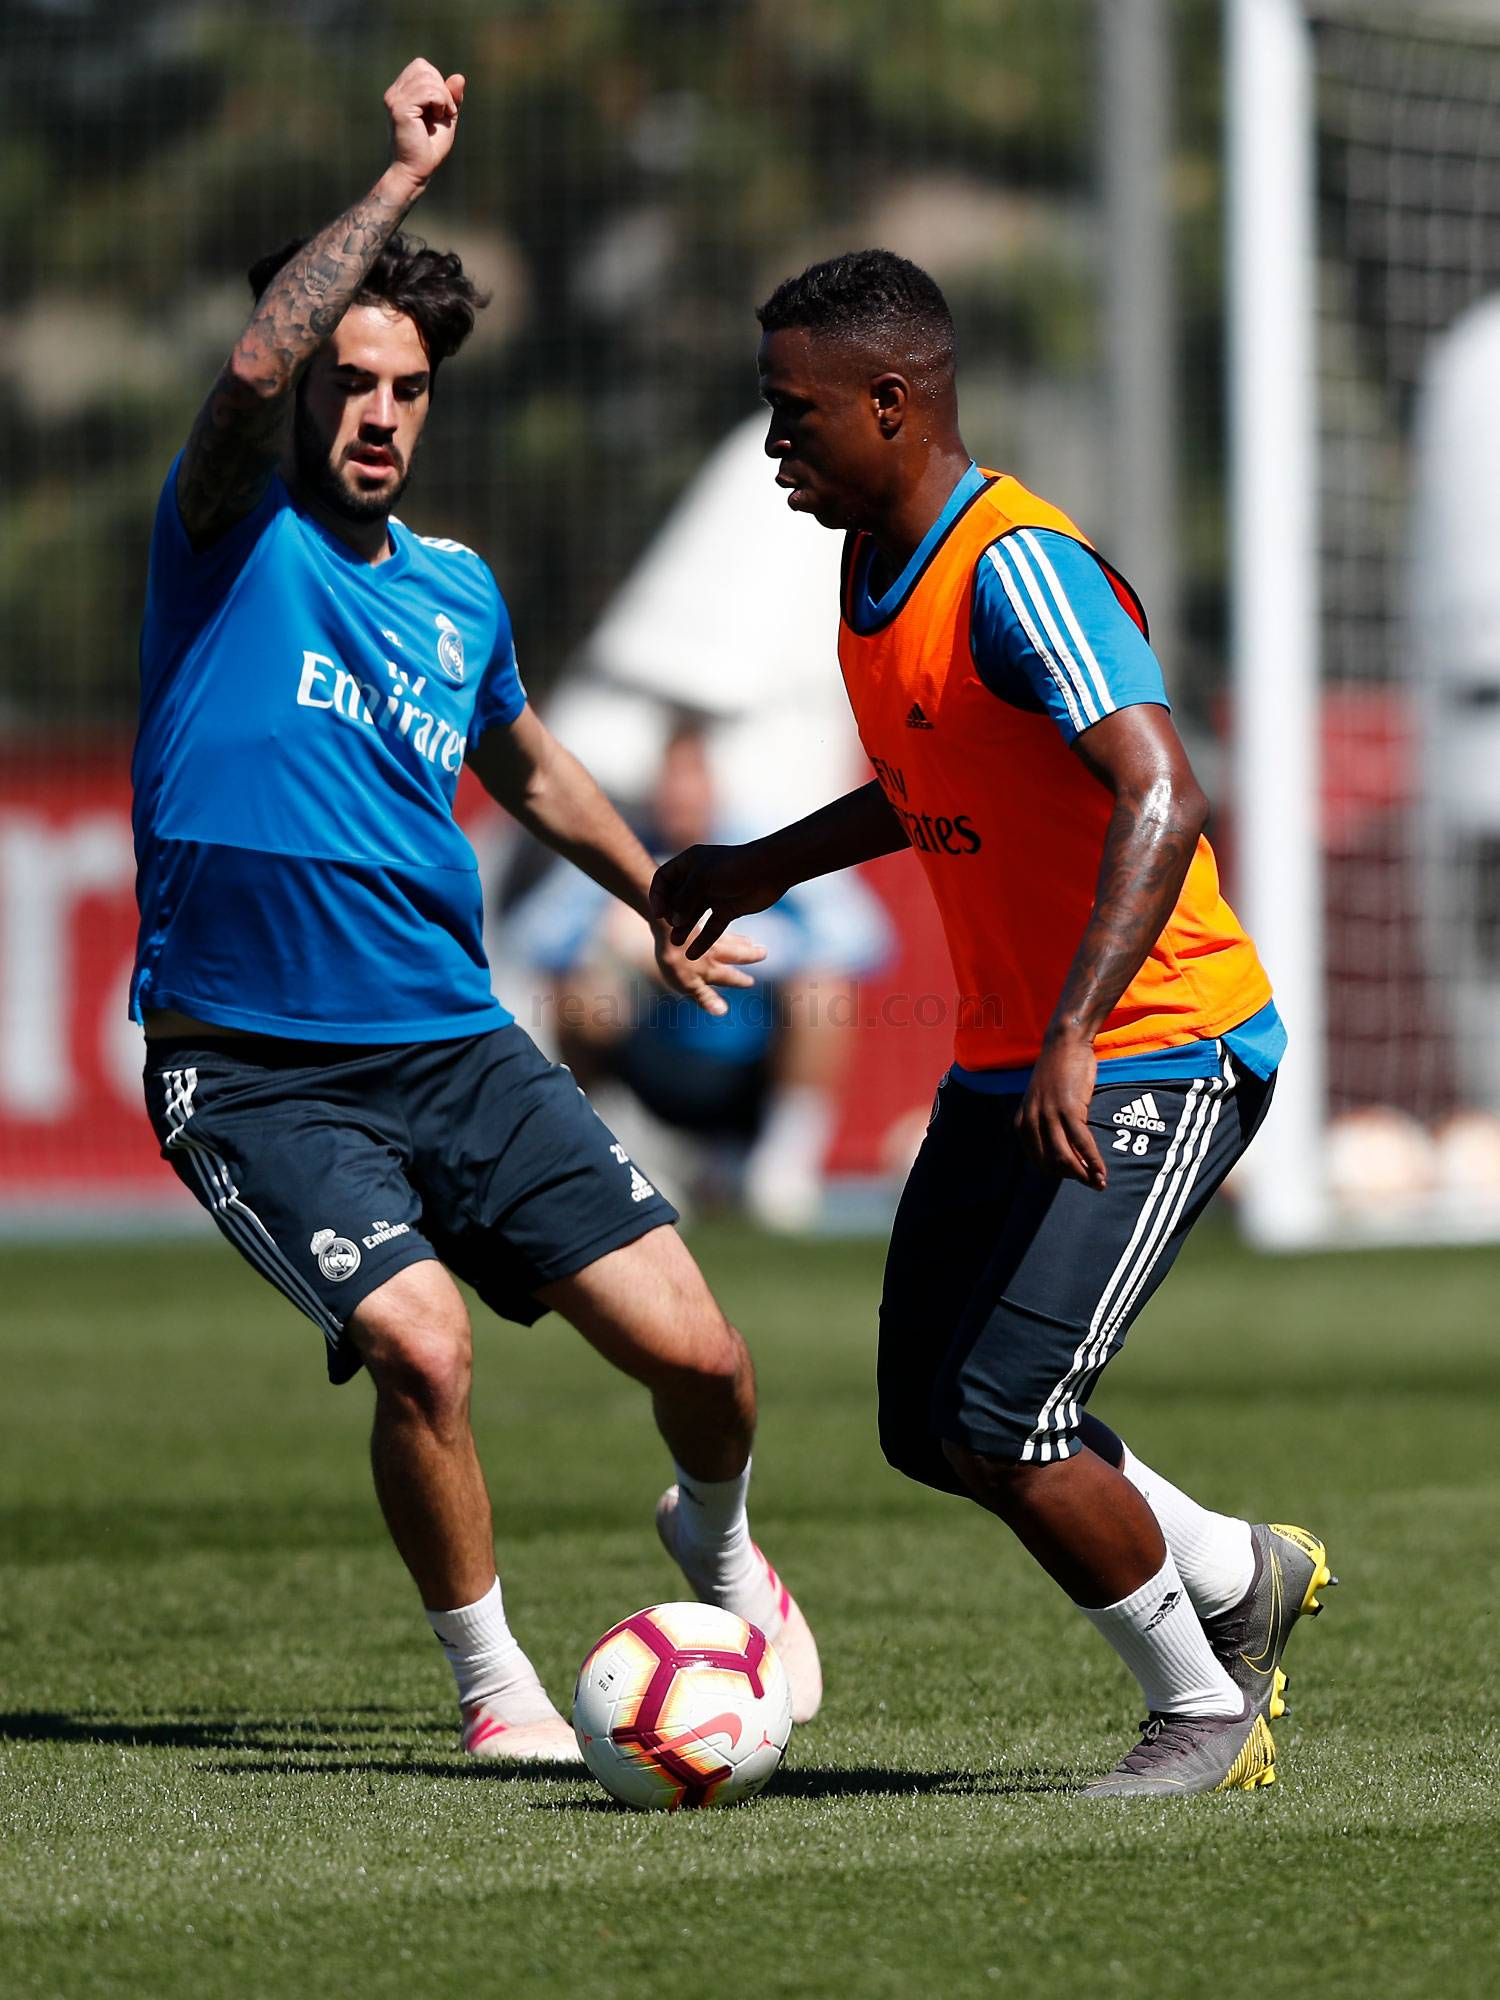 Real Madrid - Entrenamiento del Real Madrid - 27-04-2019